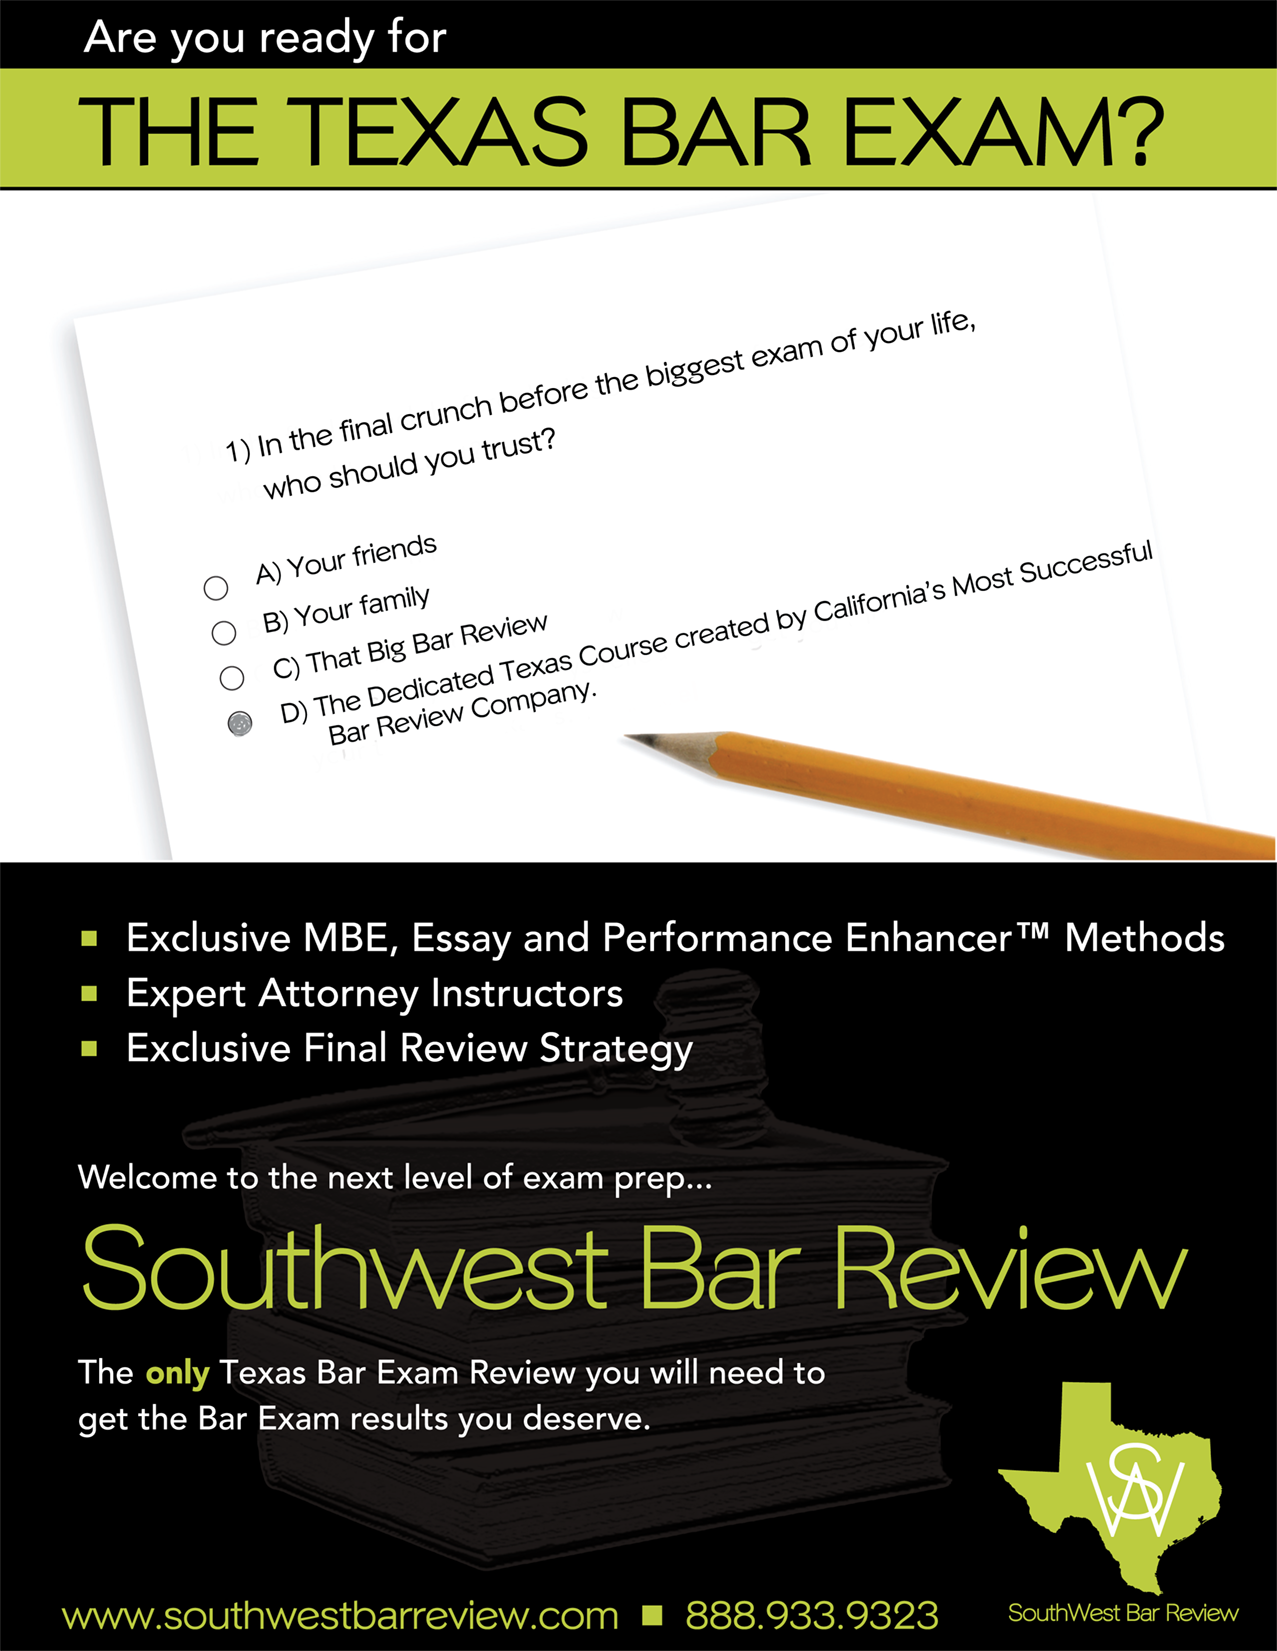 Are you Ready? - Texas Bar Review - Southwest Bar Review